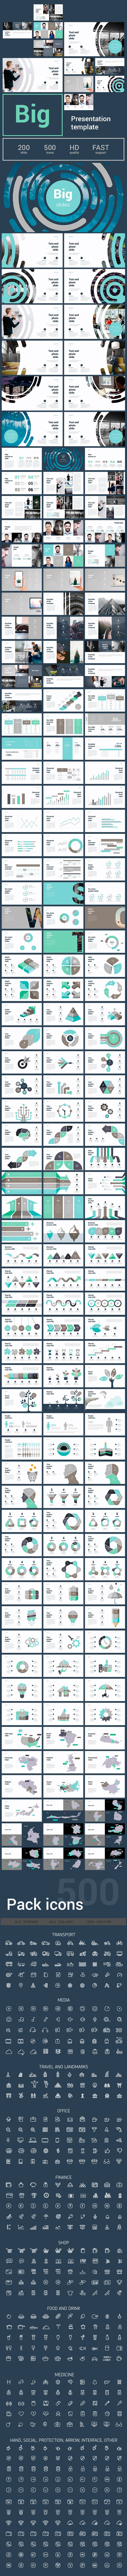 Big Slides Clean Powerpoint Template - 200+ Unique Slides